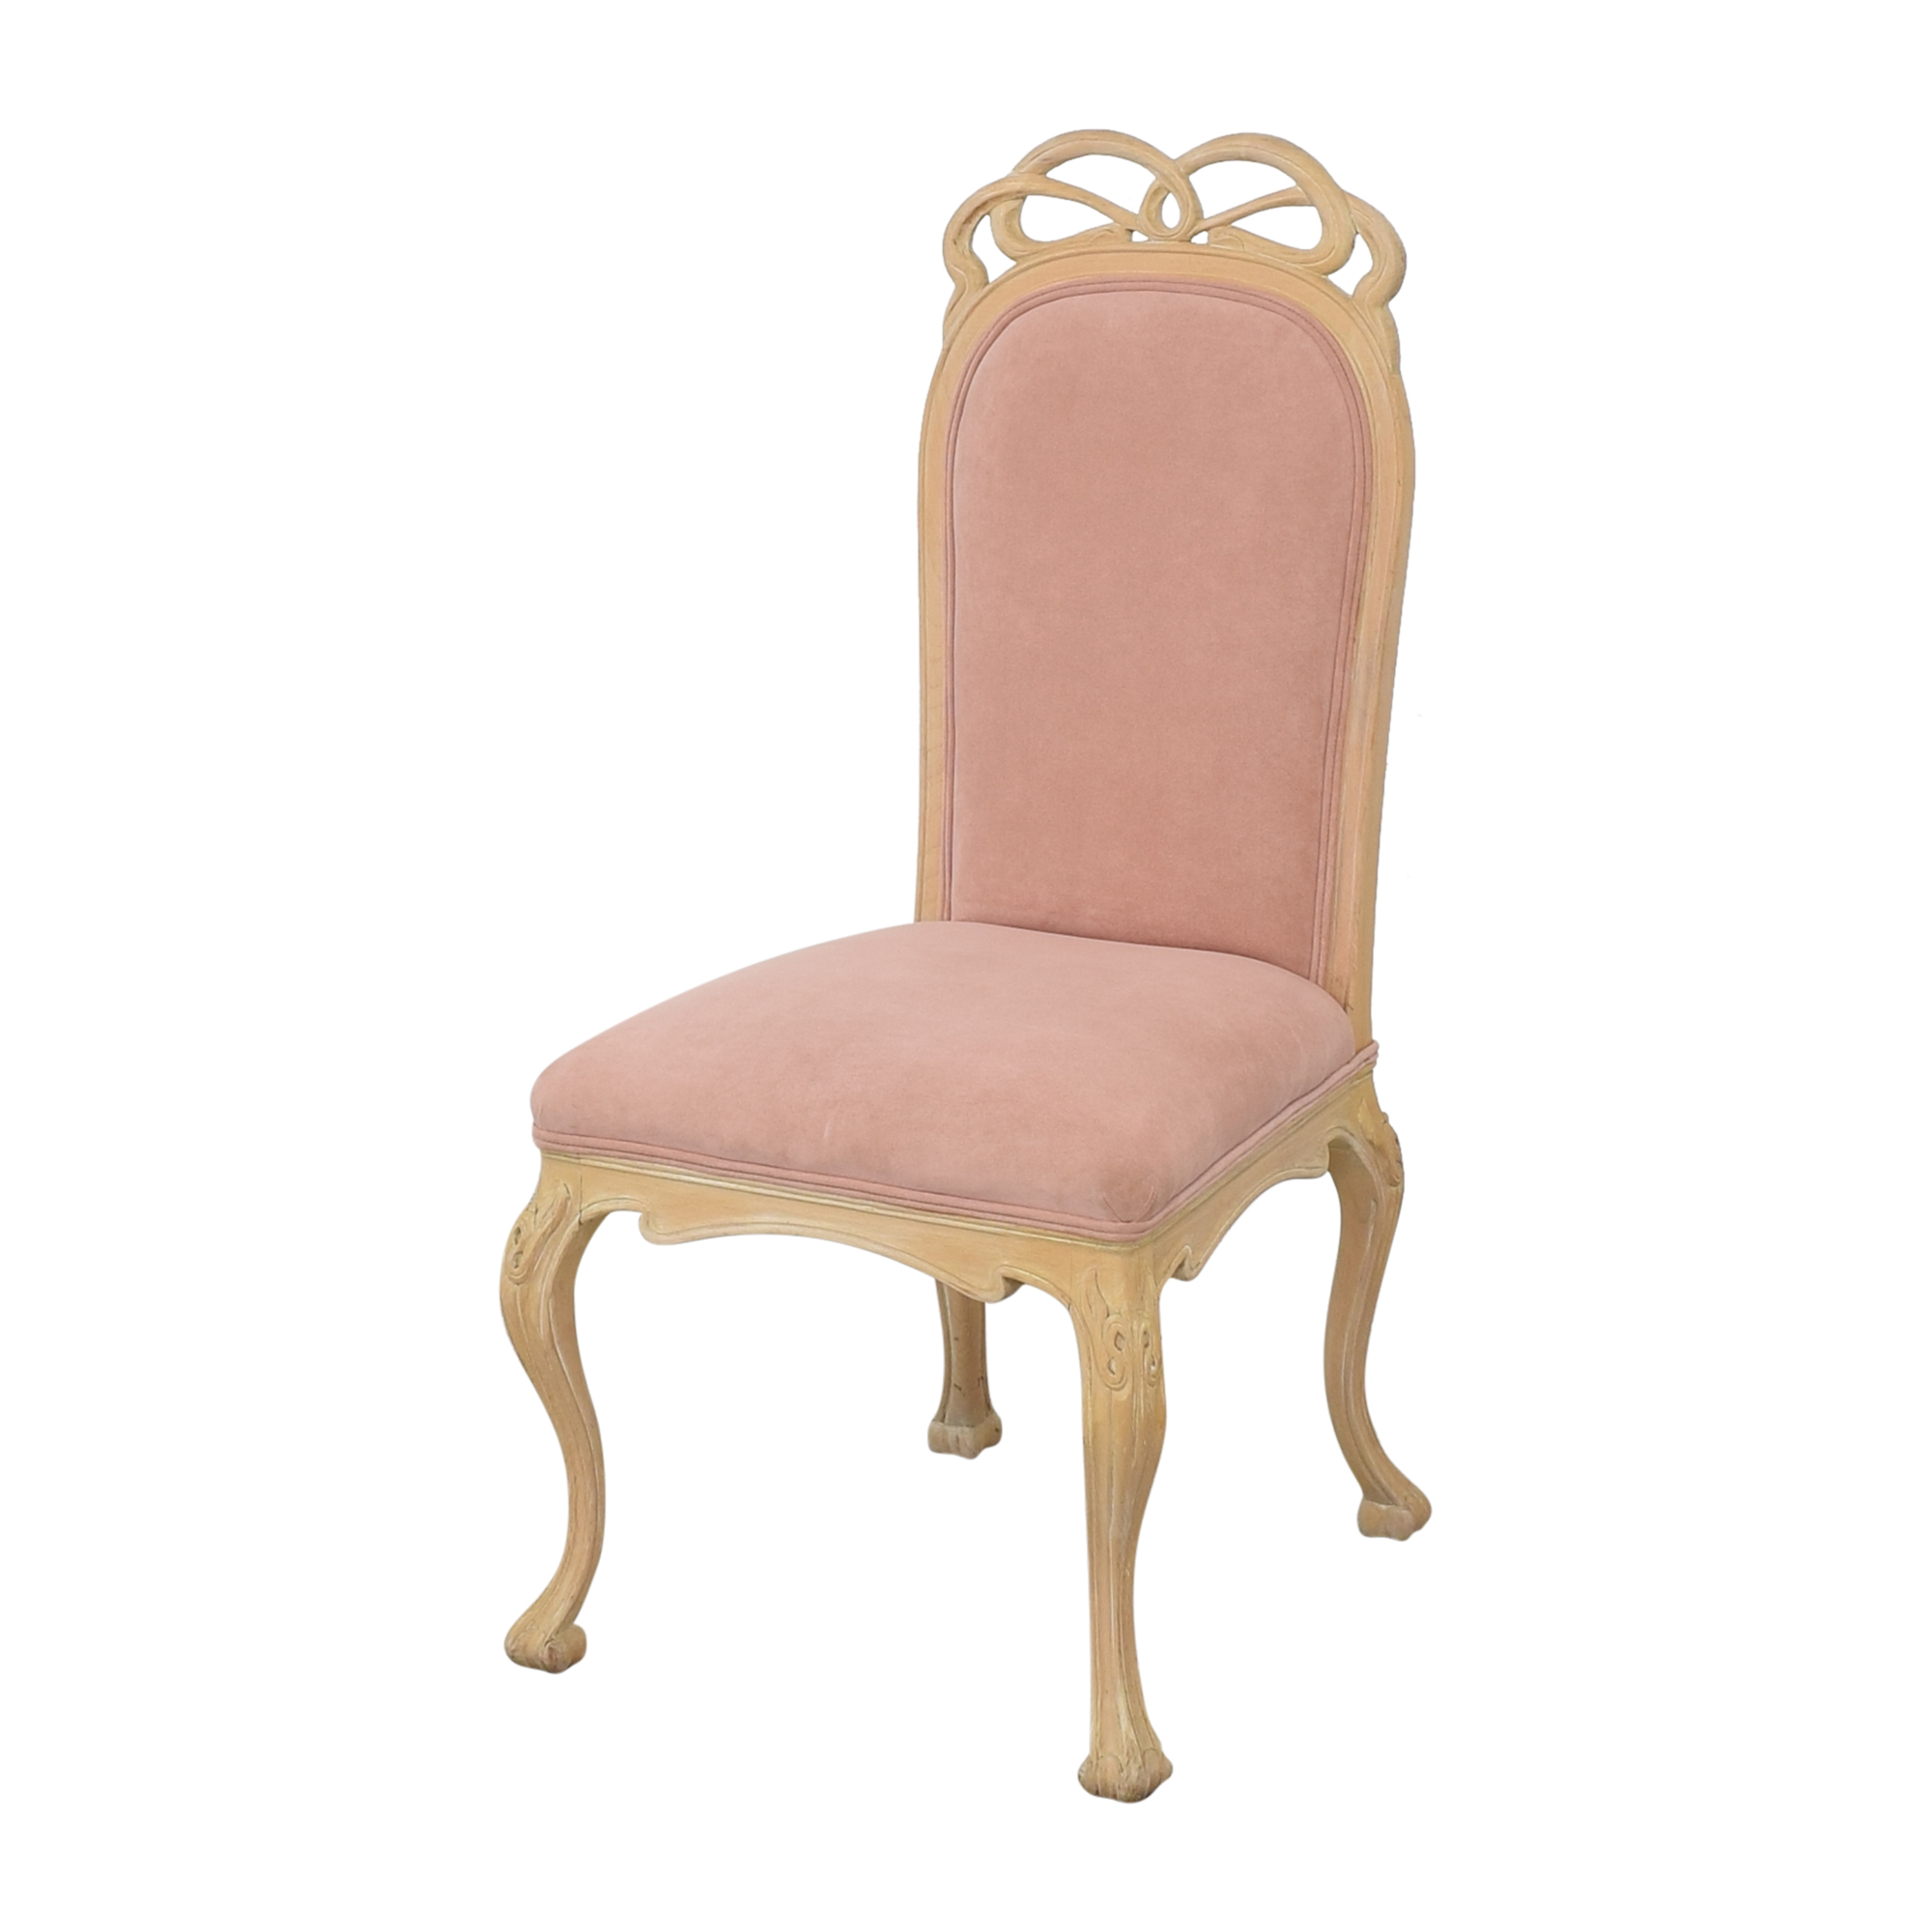 High Back Upholstered Dining Chairs for sale